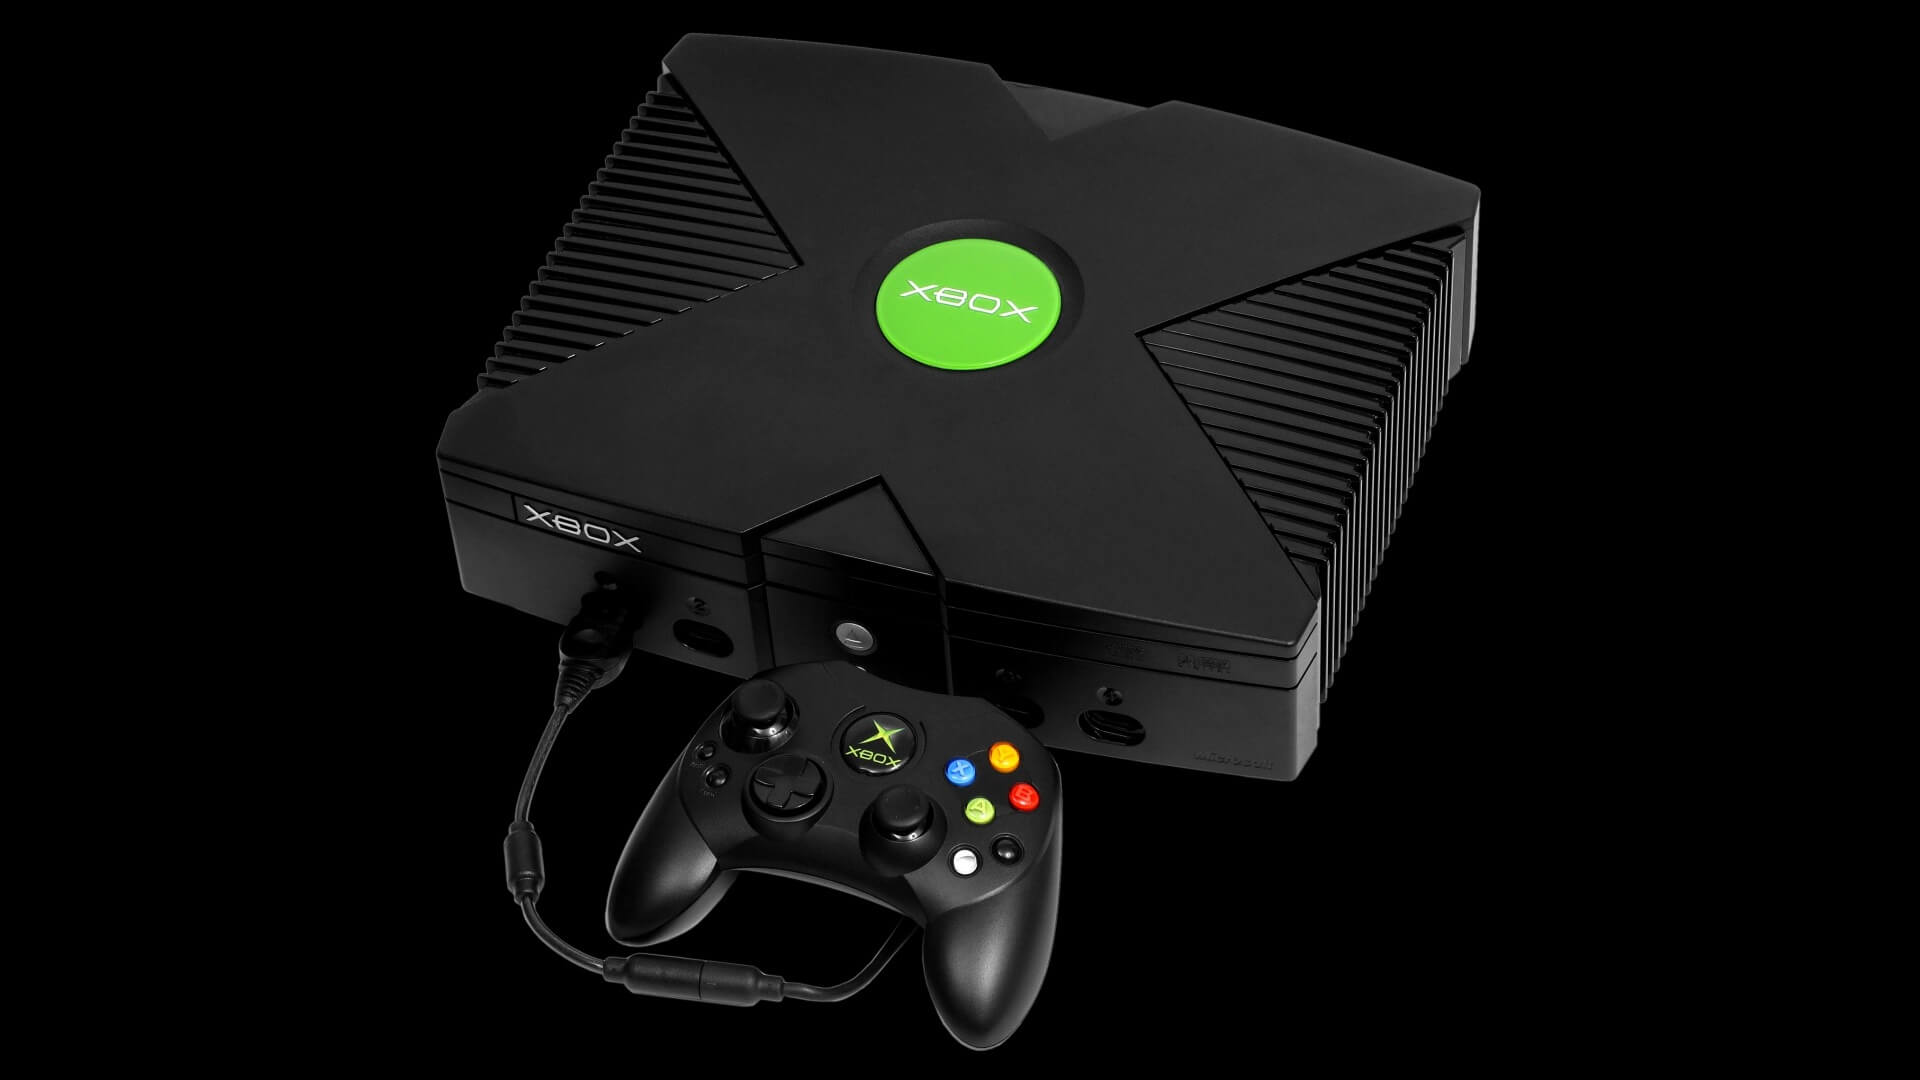 E3 2017: Crimson Skies Confirmed To Become Backwards Compatible On Xbox One